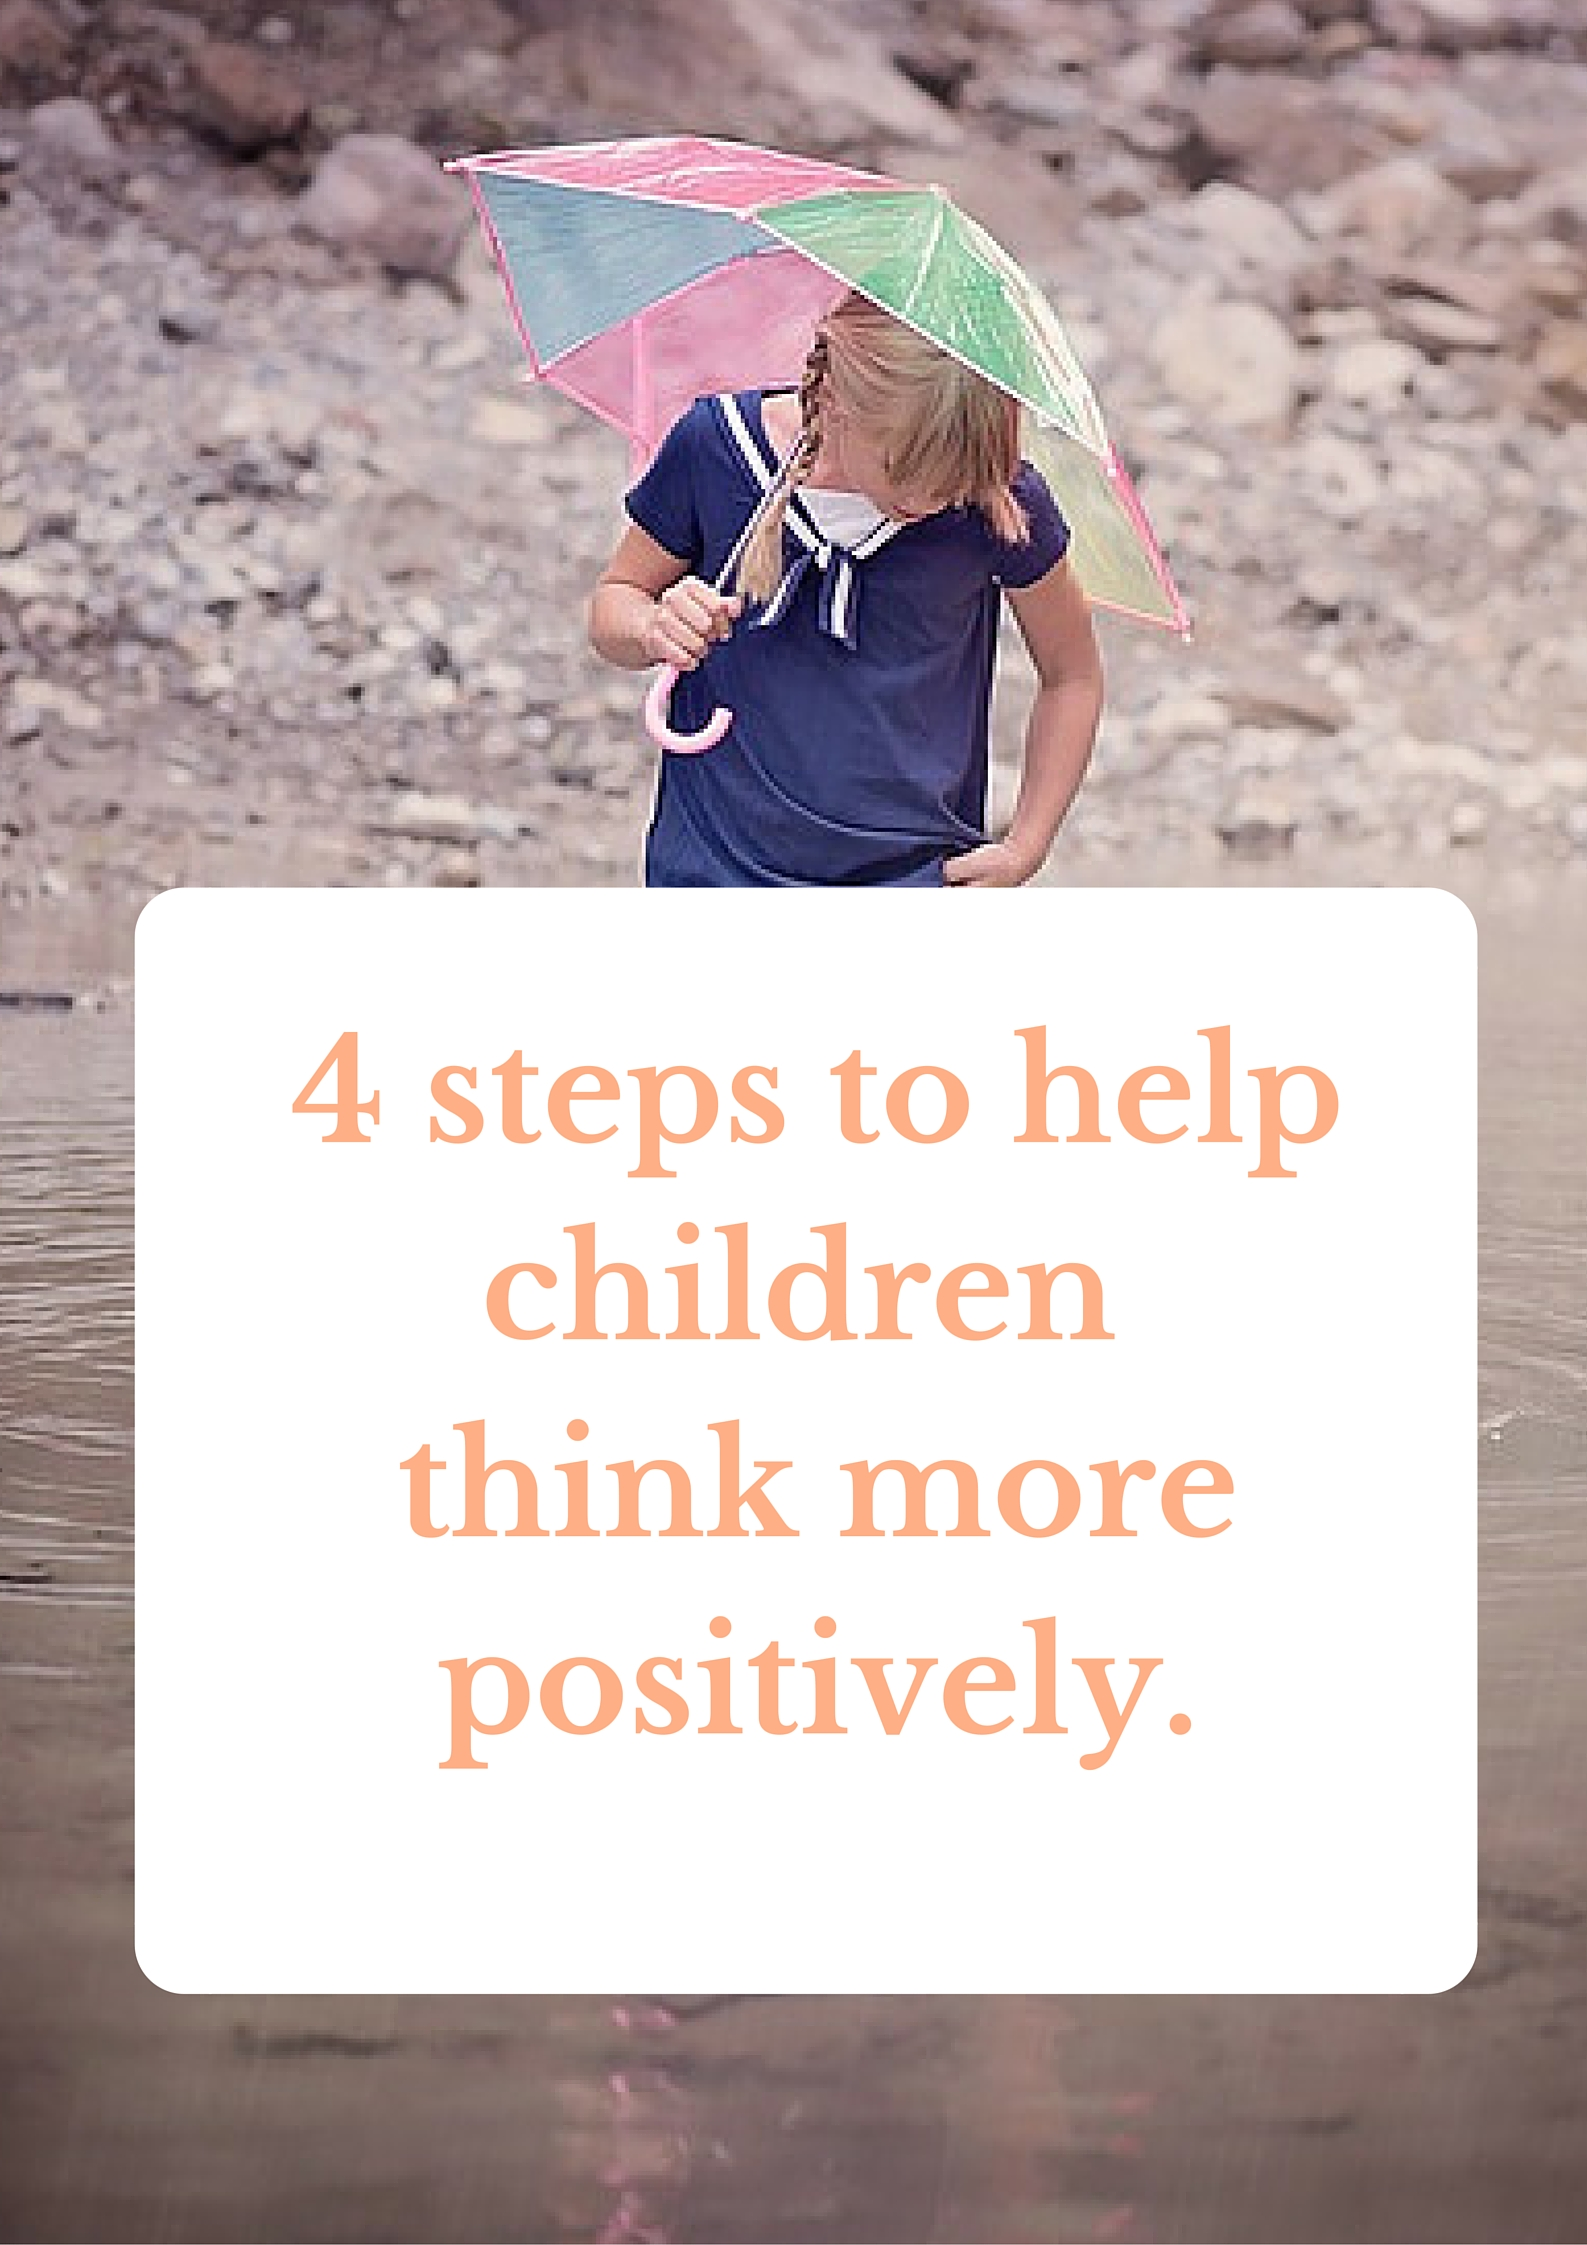 4 steps to help children think more positively